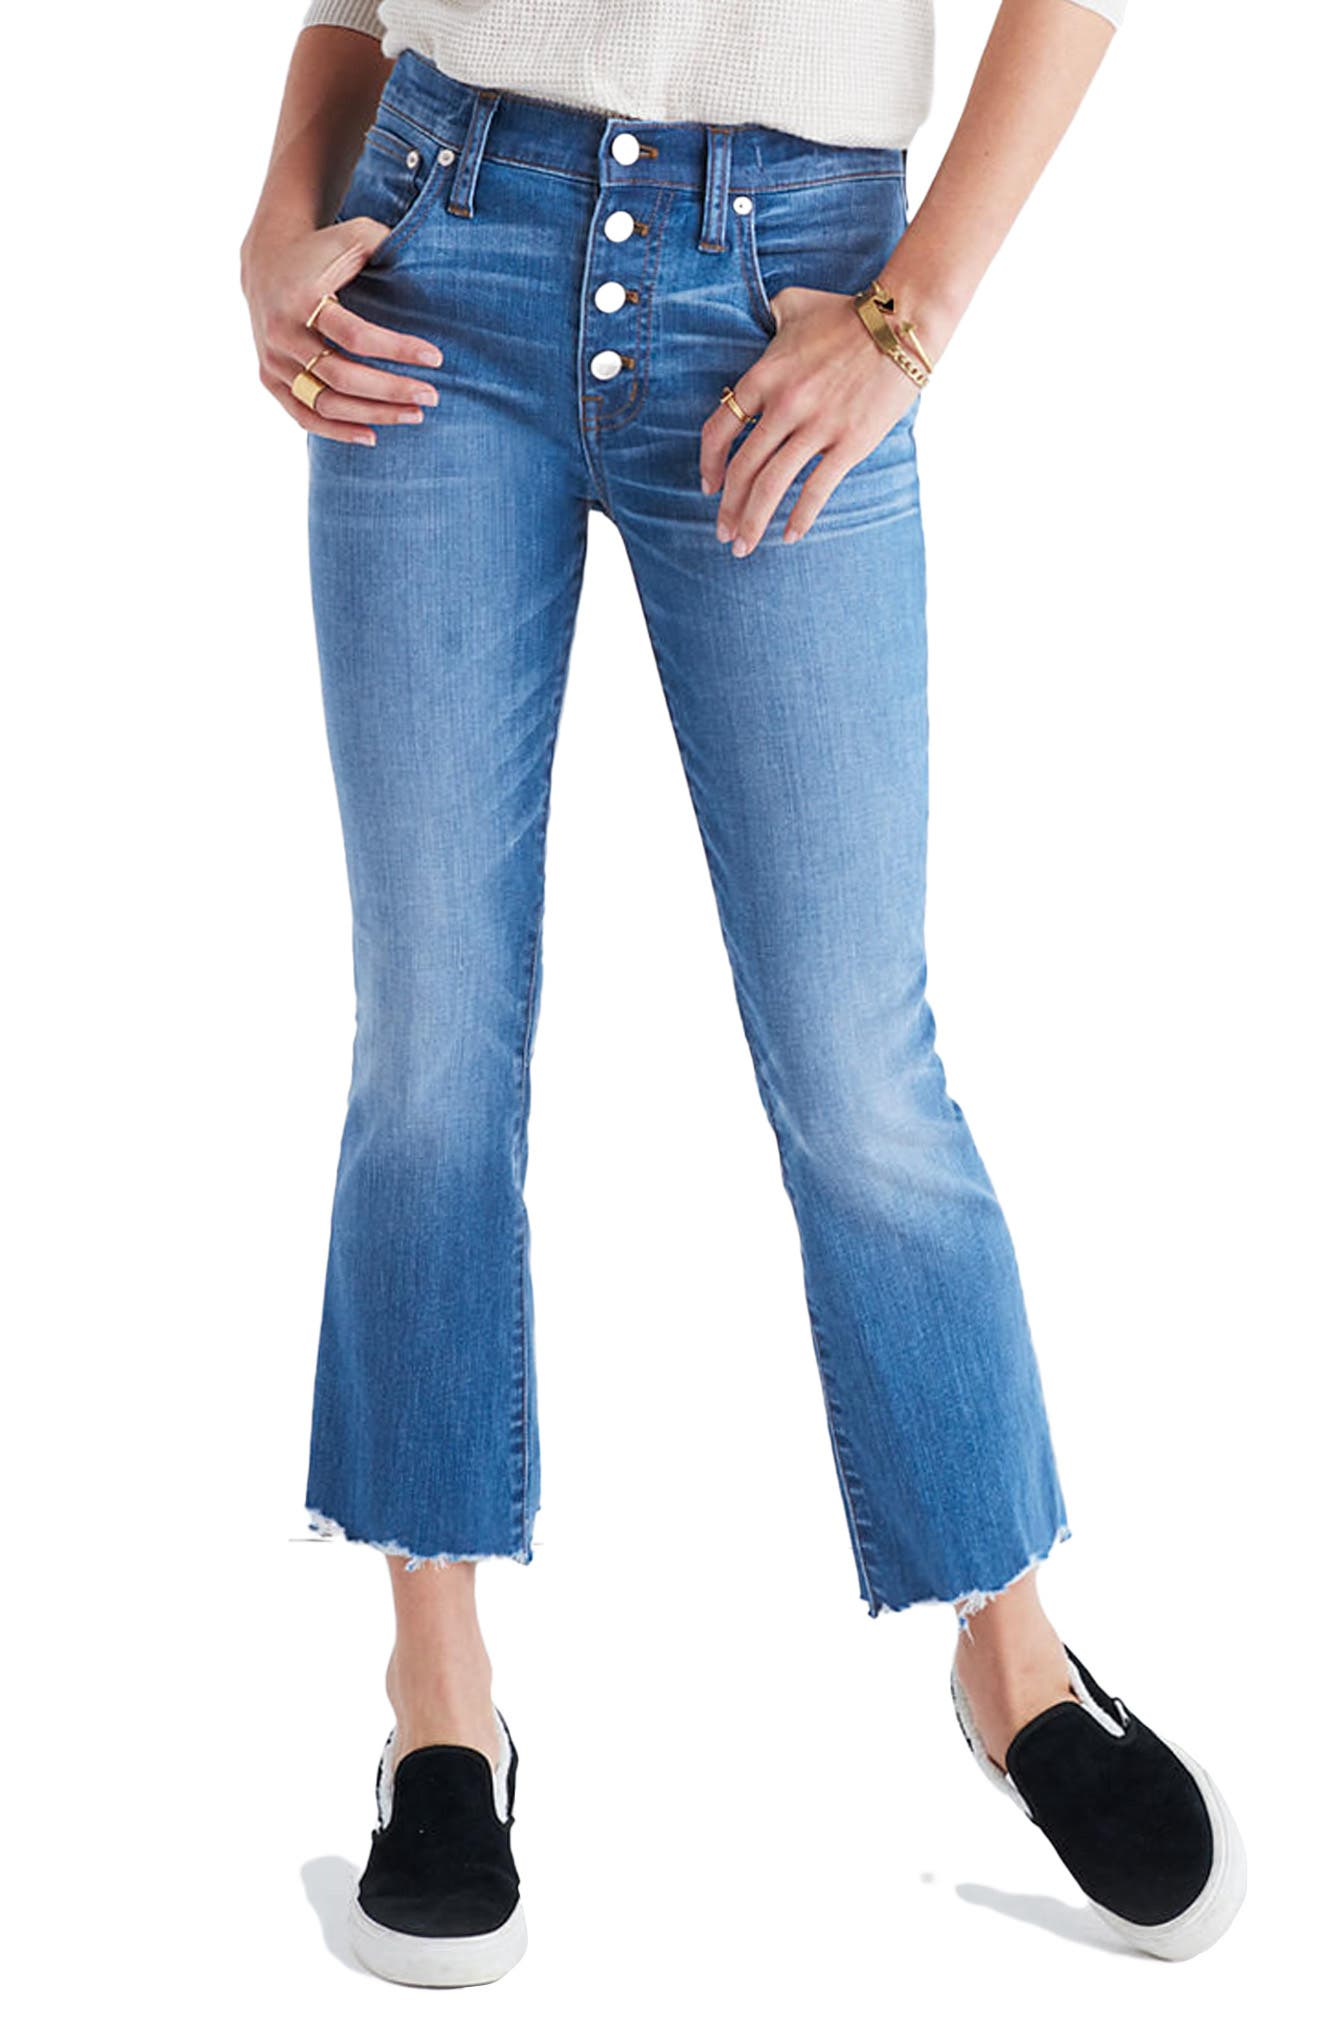 Alternate Image 1 Selected - Madewell Cali Demi Boot Jeans (Fenton Wash)